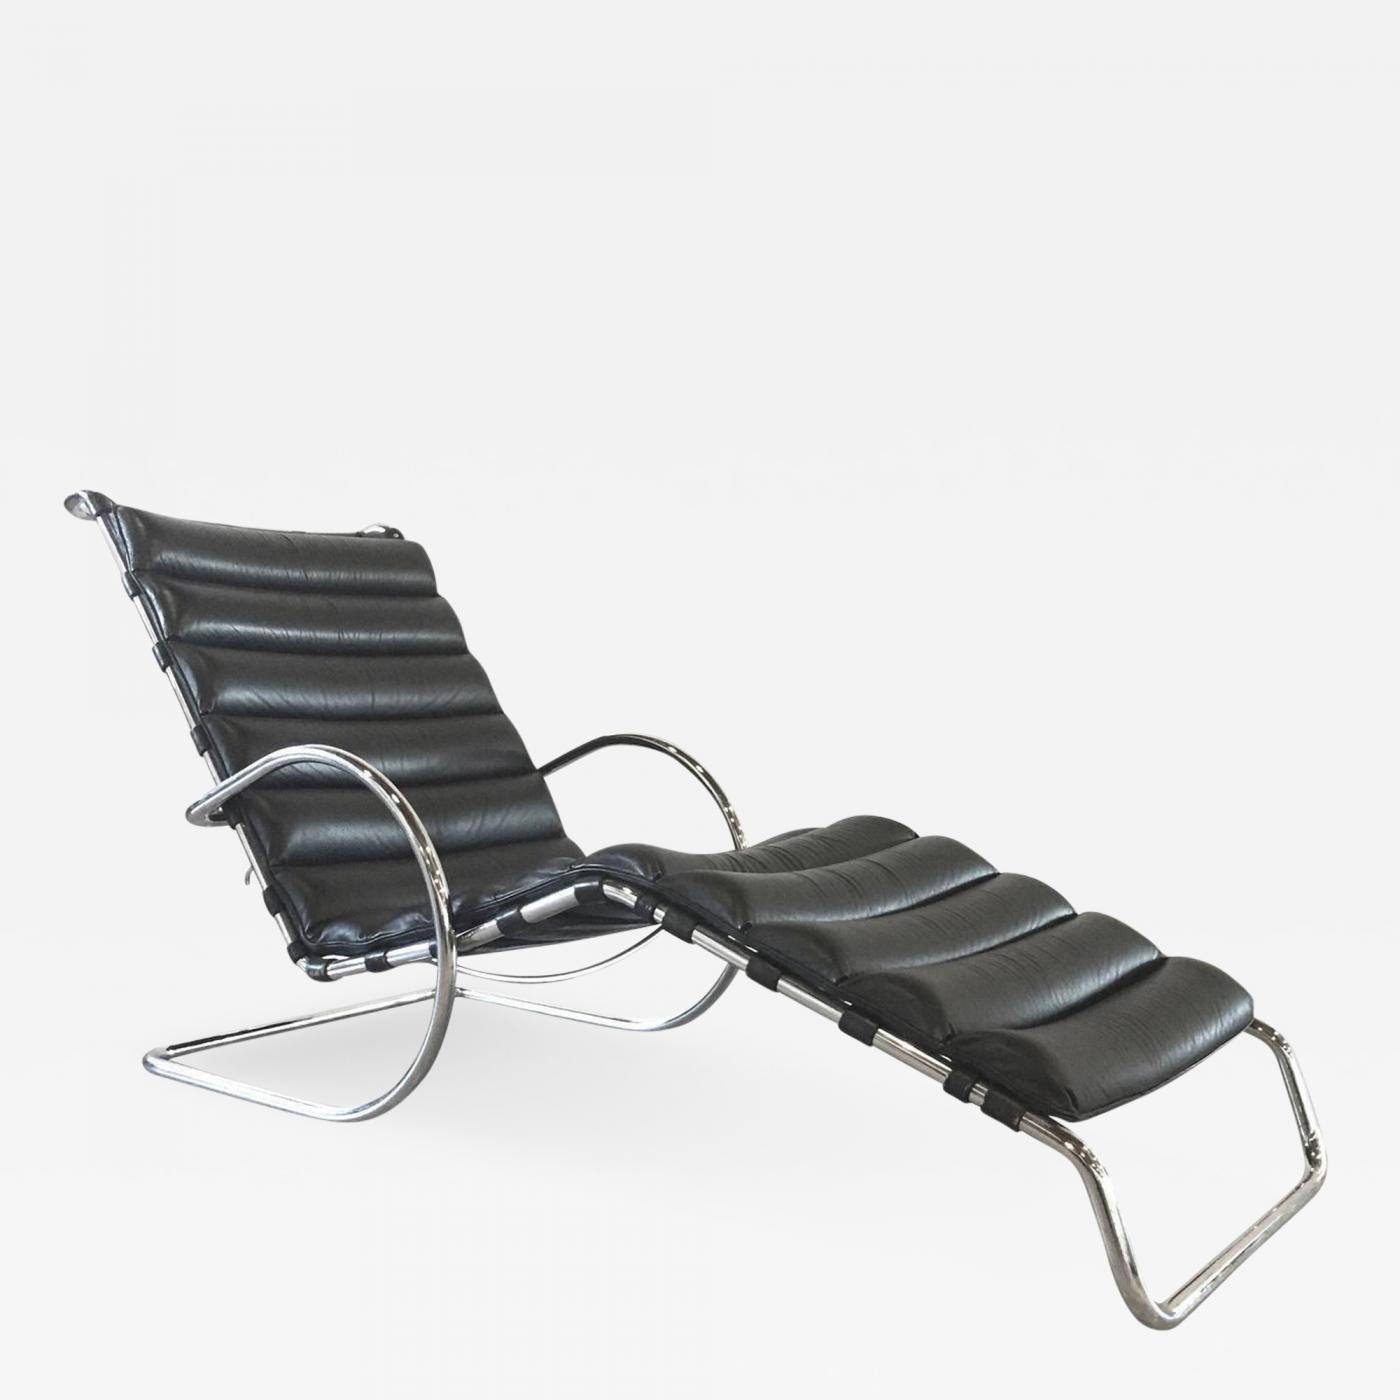 Black leather chaise longue le corbusier furniture for Black leather chaise